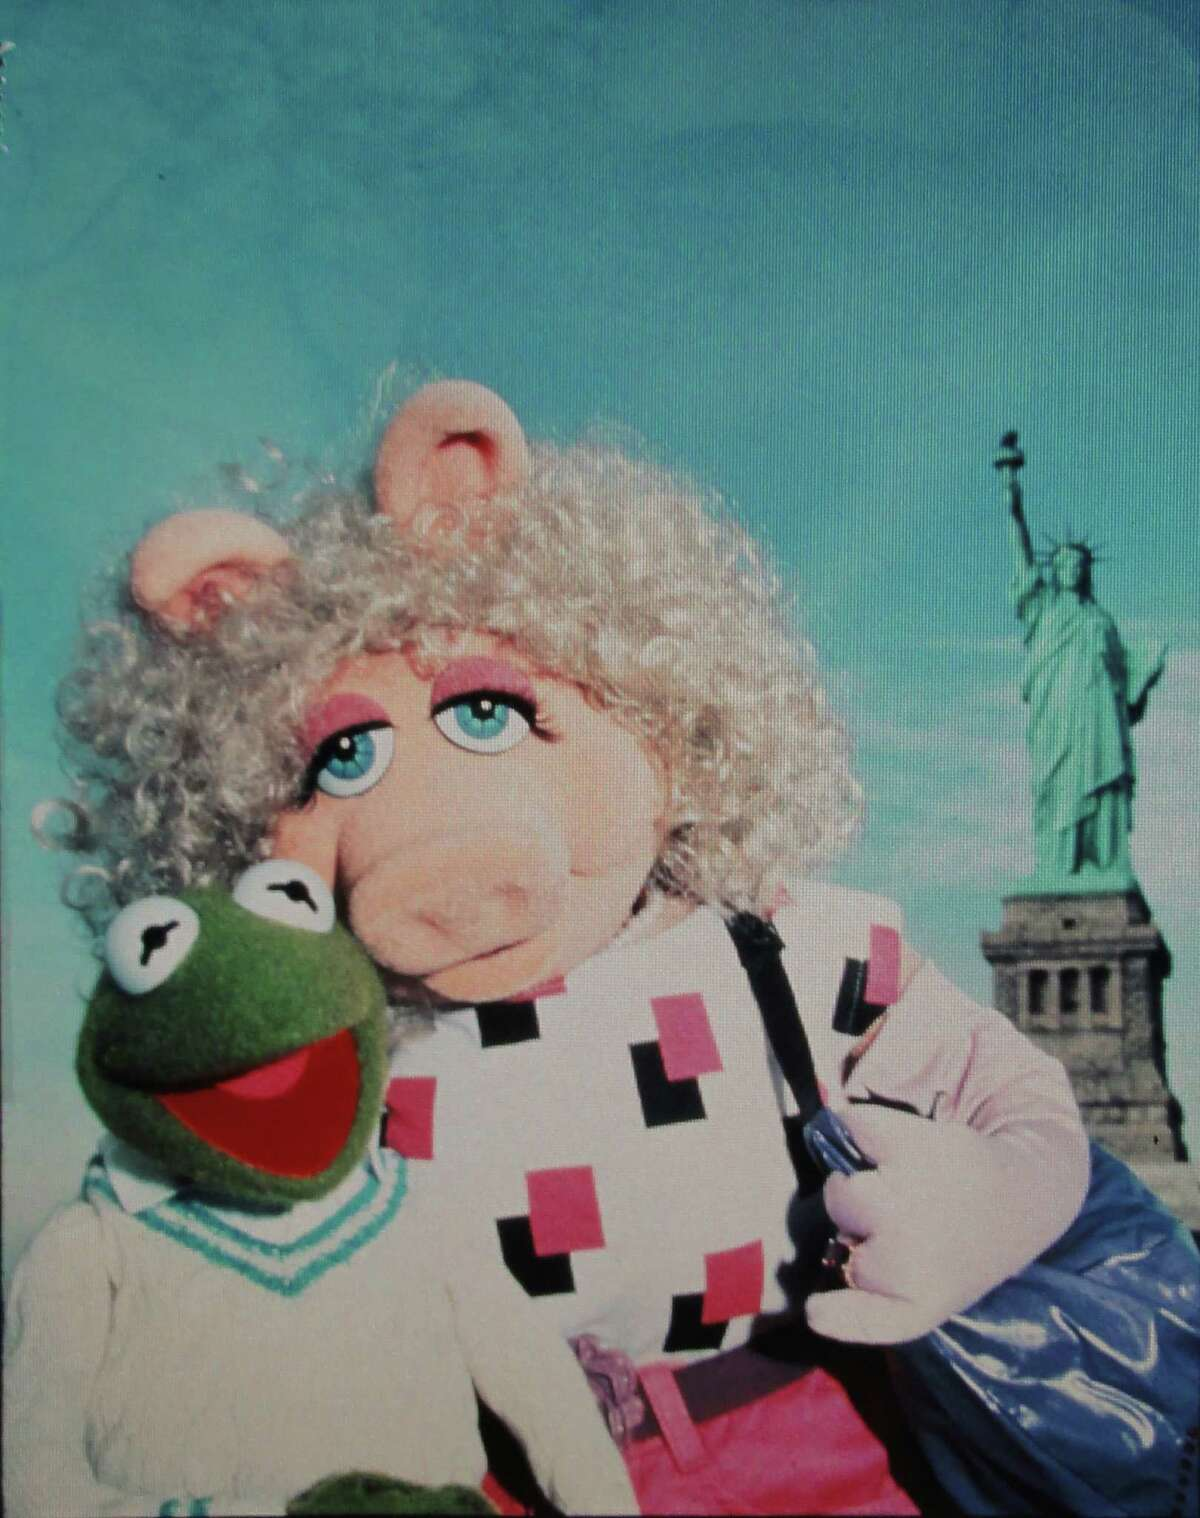 Kermit The Frog and Miss Piggy star in